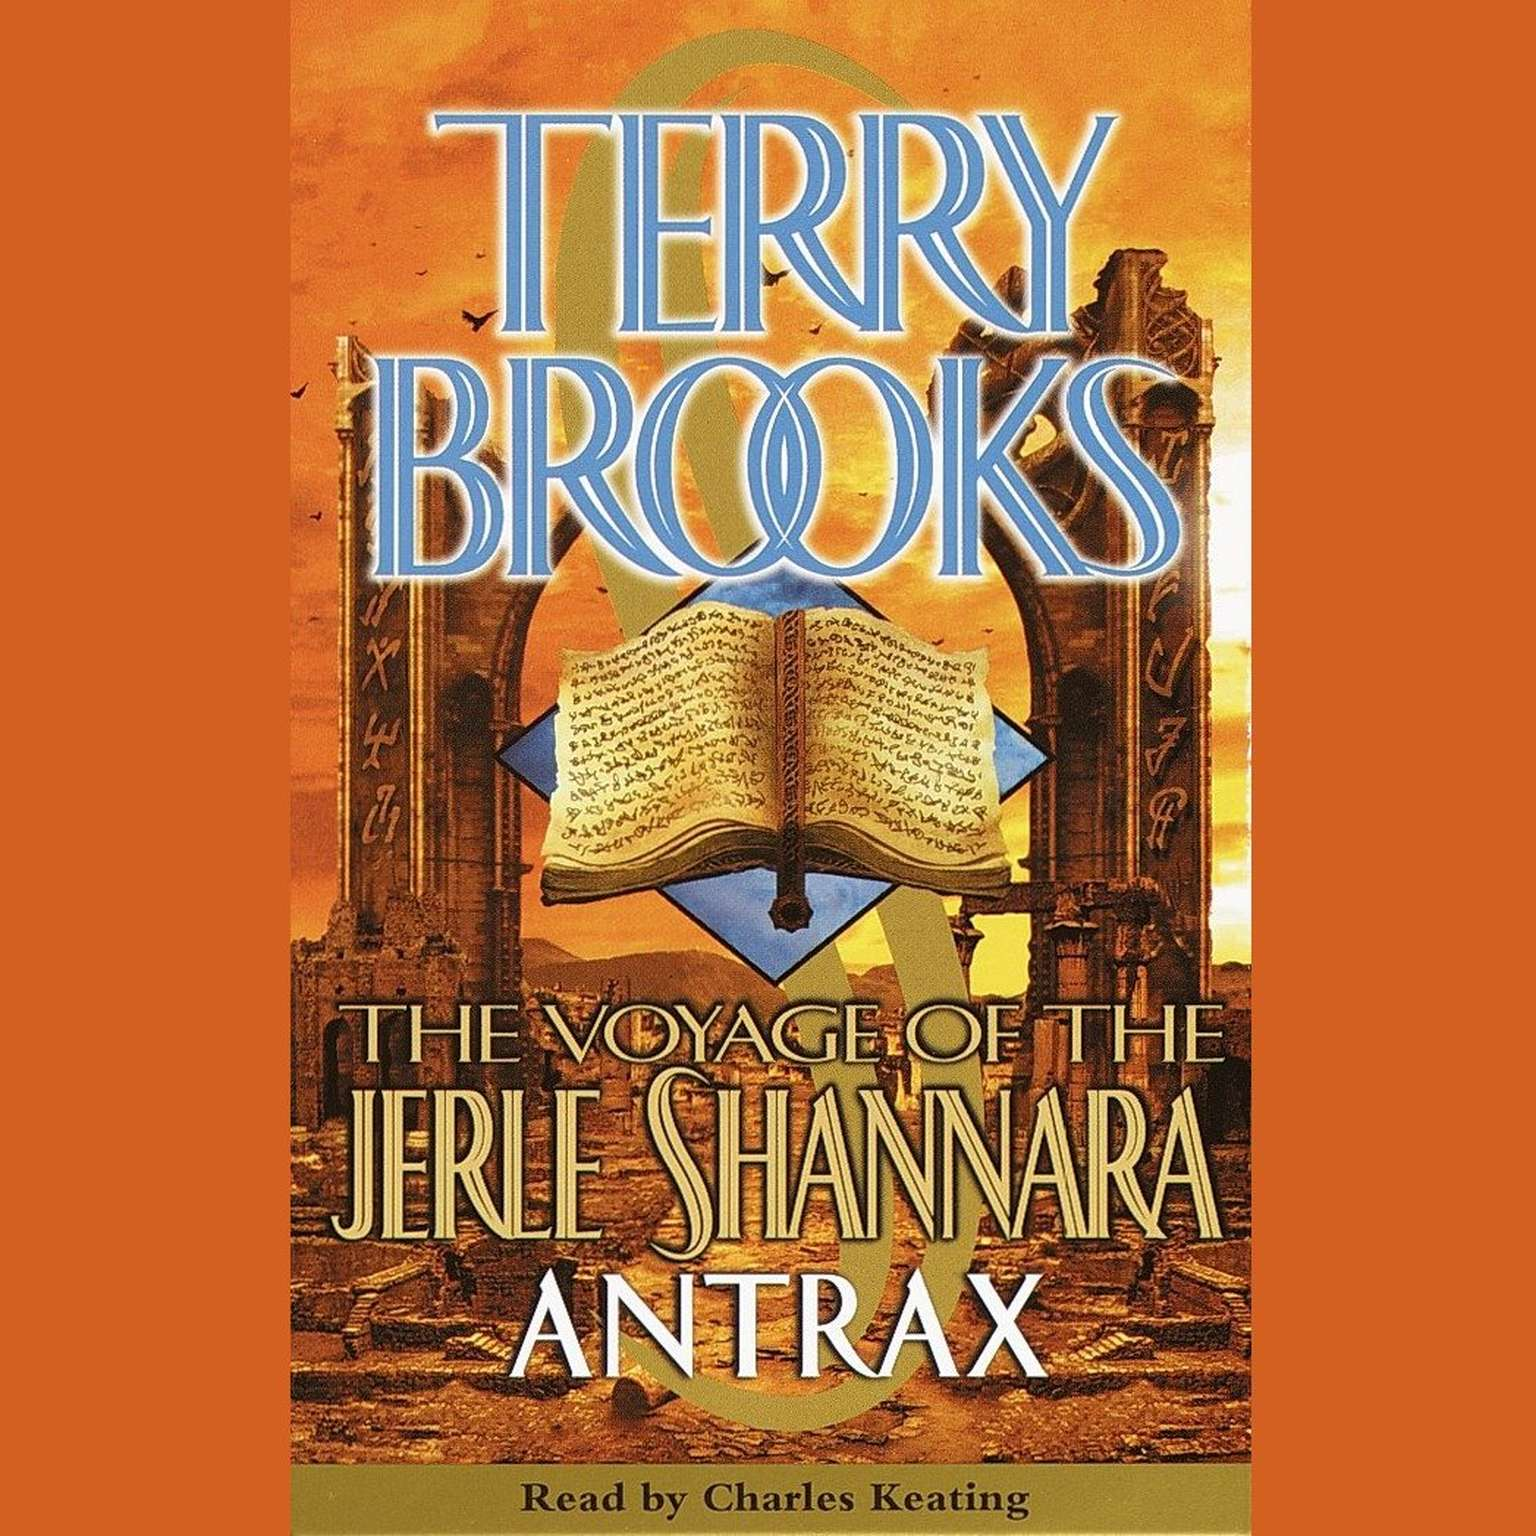 Printable The Voyage of the Jerle Shannara: Antrax Audiobook Cover Art